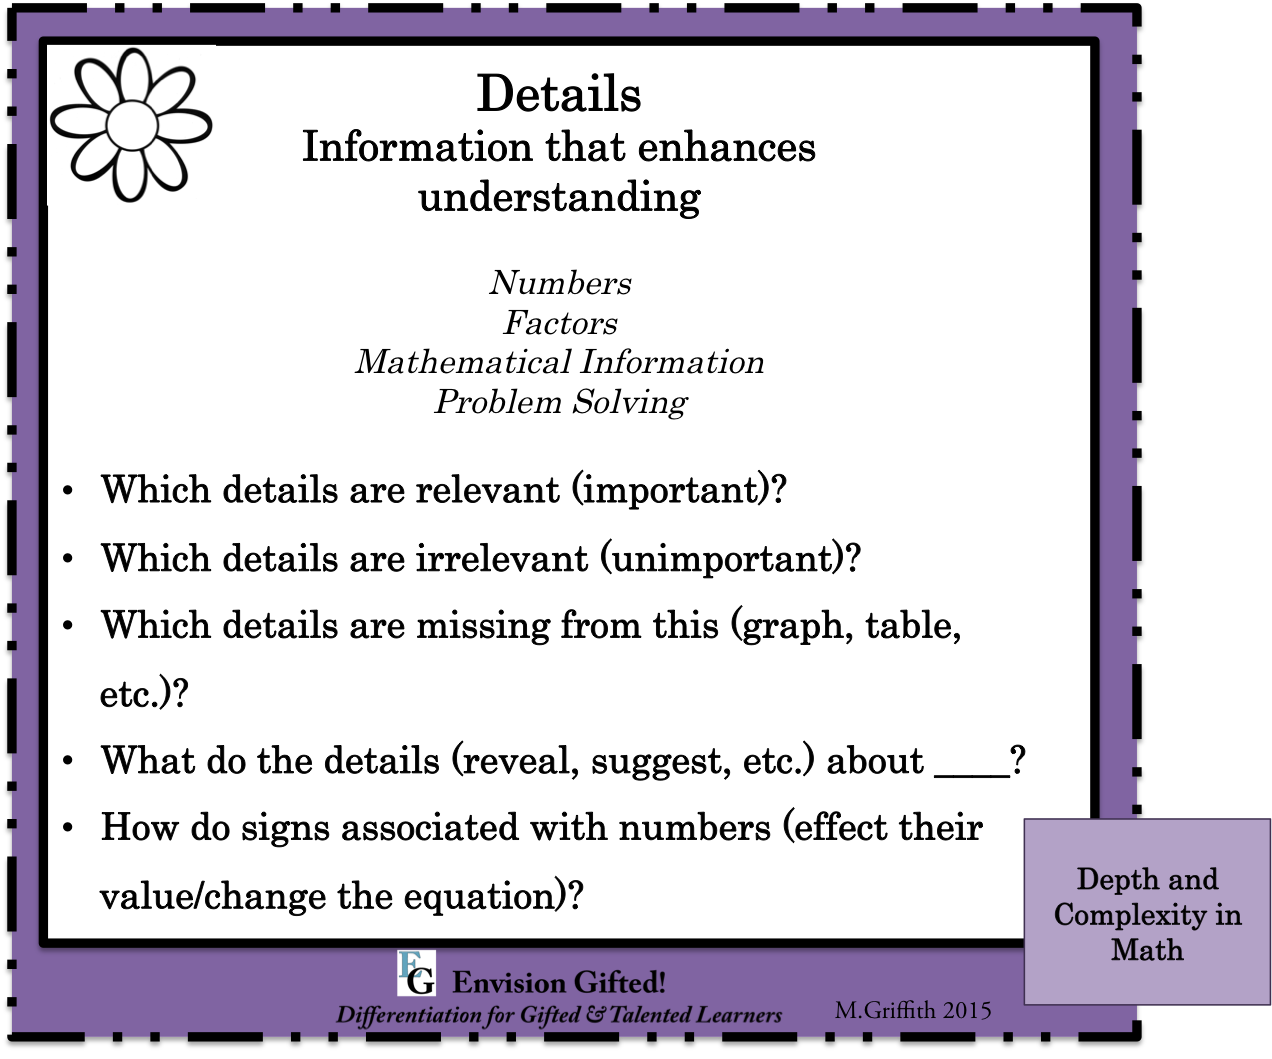 Envision Gifted. Depth and Complexity Details in Math